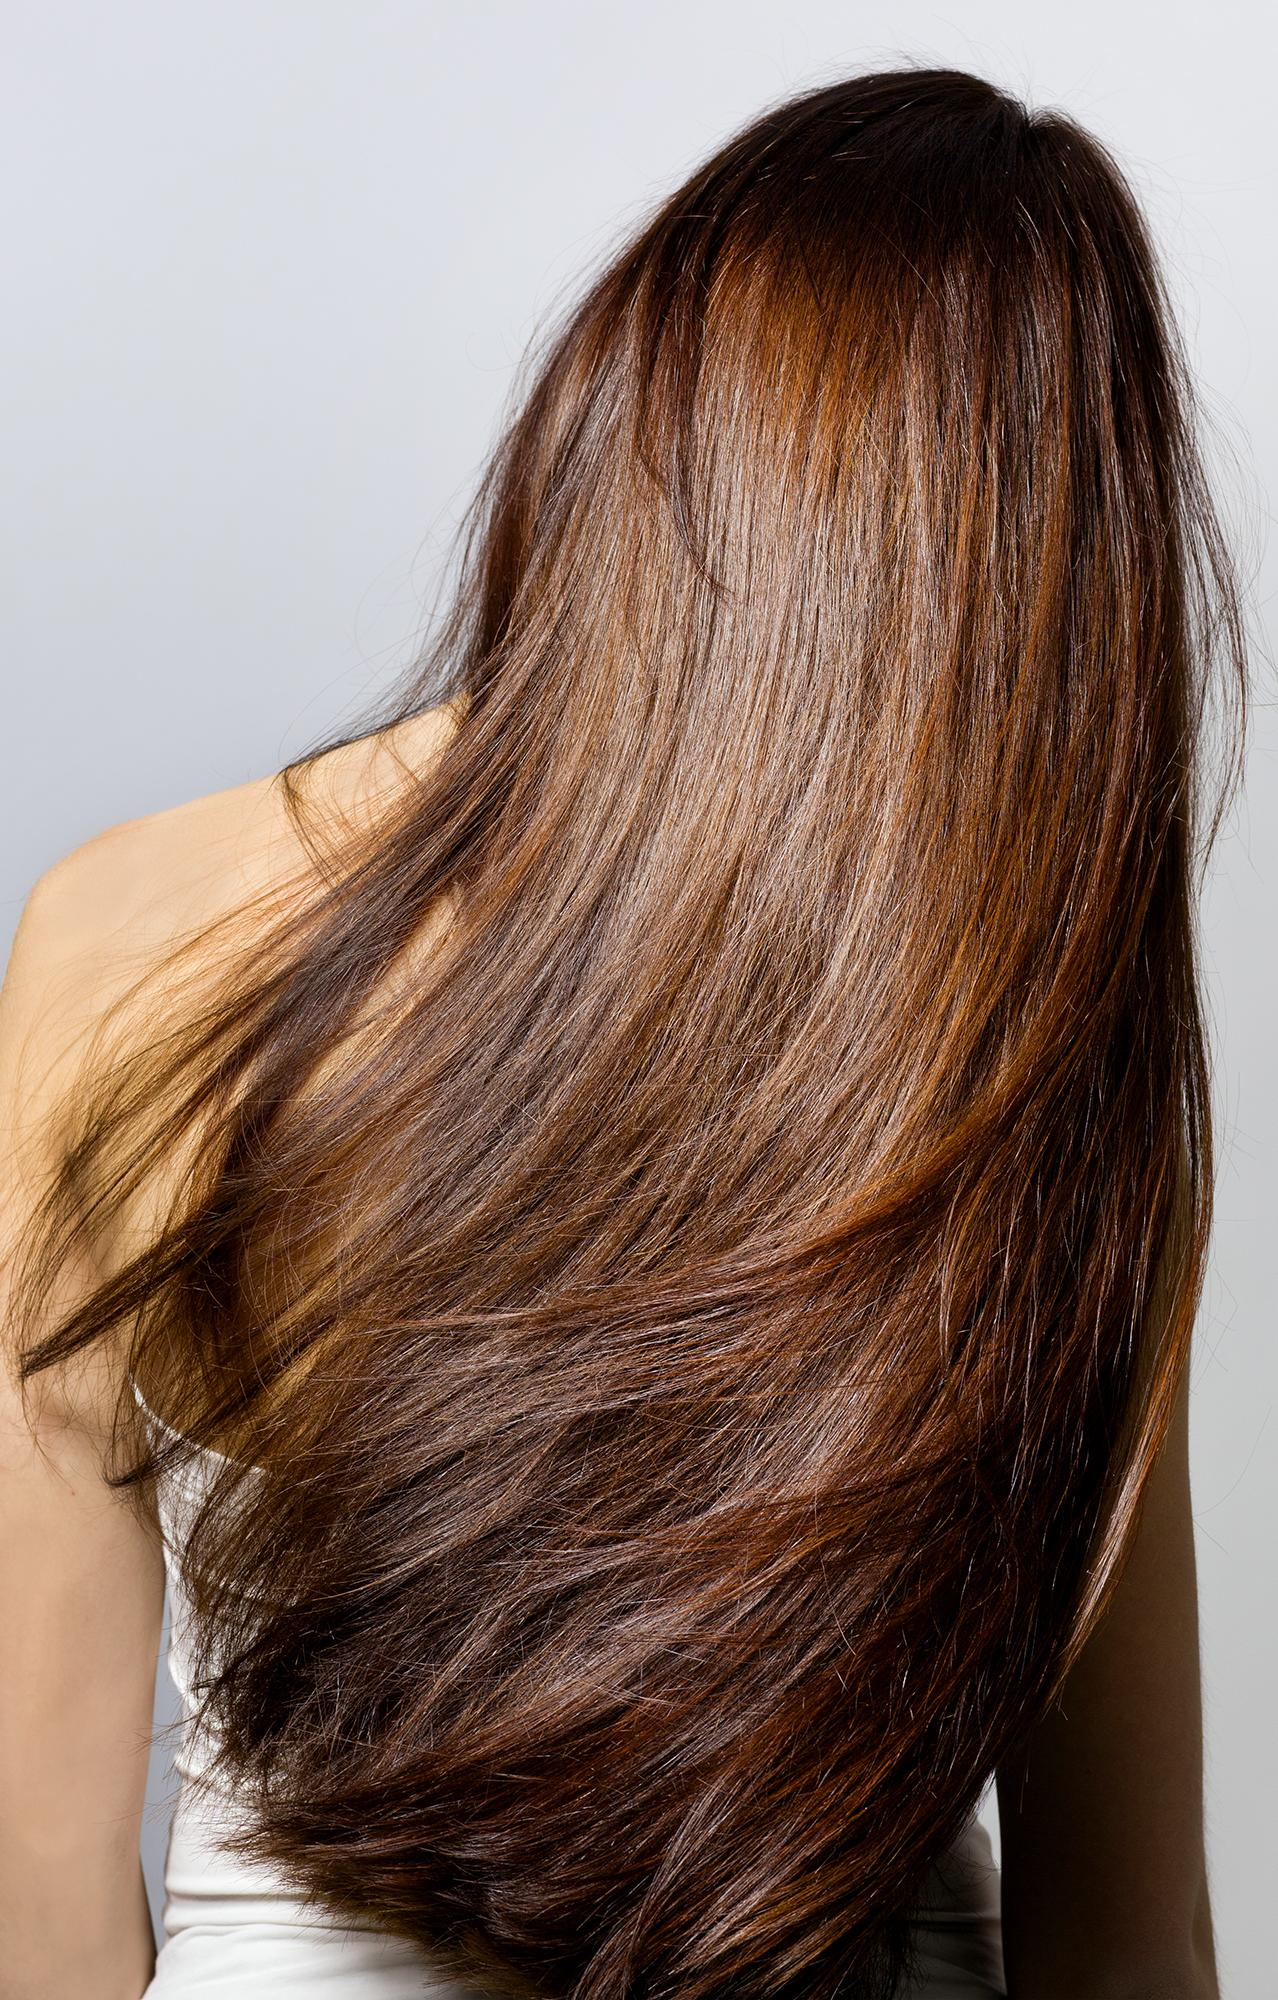 Superbe Hair Glaze Vs. Hair Gloss? Weu0027ve Got The Scoop On The Actual Difference